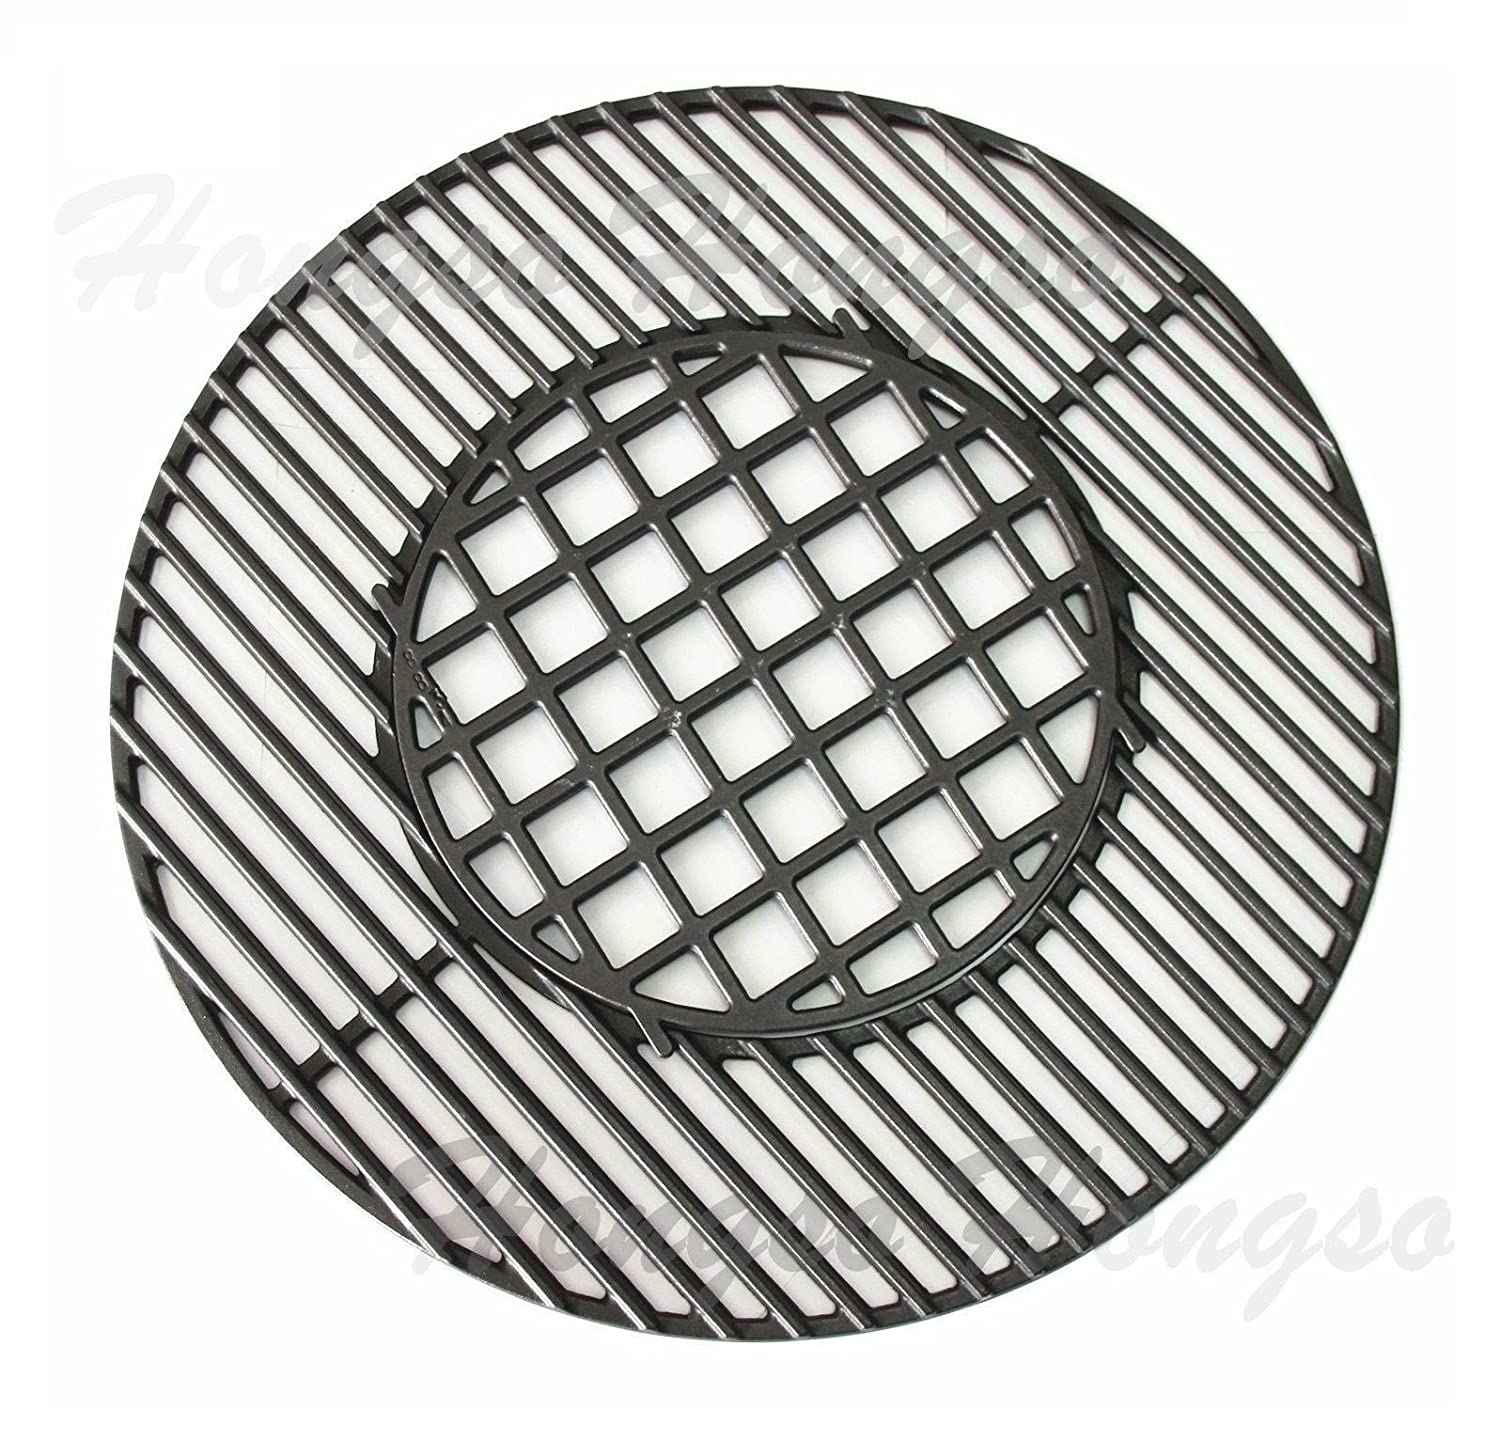 weber grill grates pch835 cast iron gourmet bbq system hinged cooking grate 29052